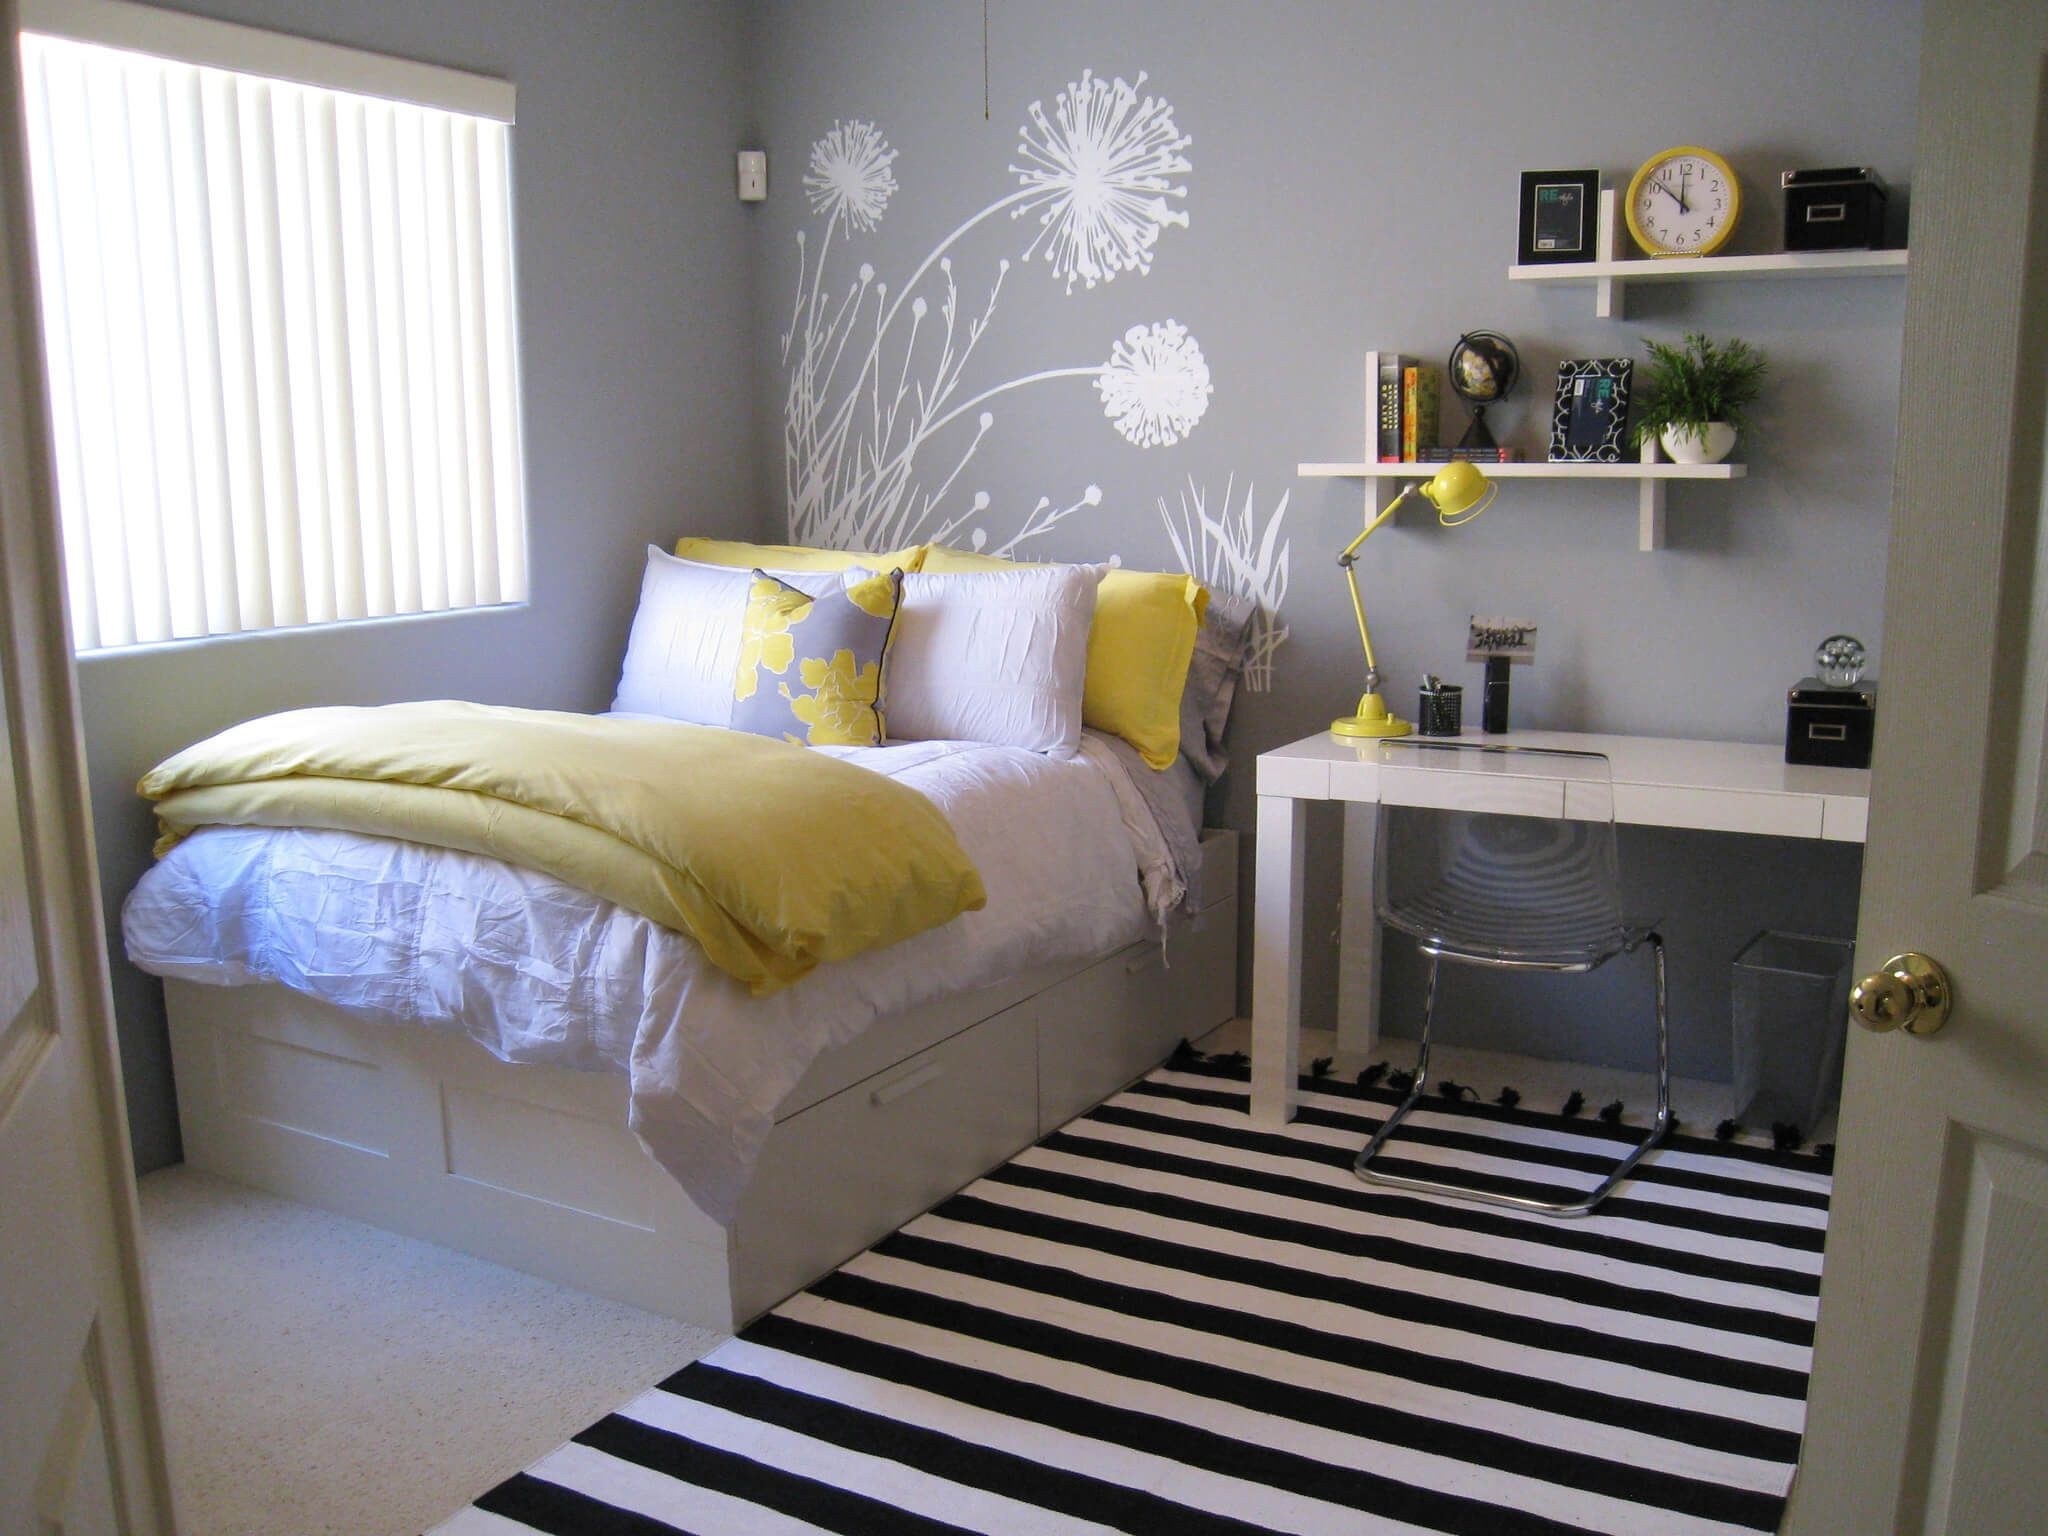 Small Bedroom Decorating Ideas On A Budget  by putra sulung  Medium